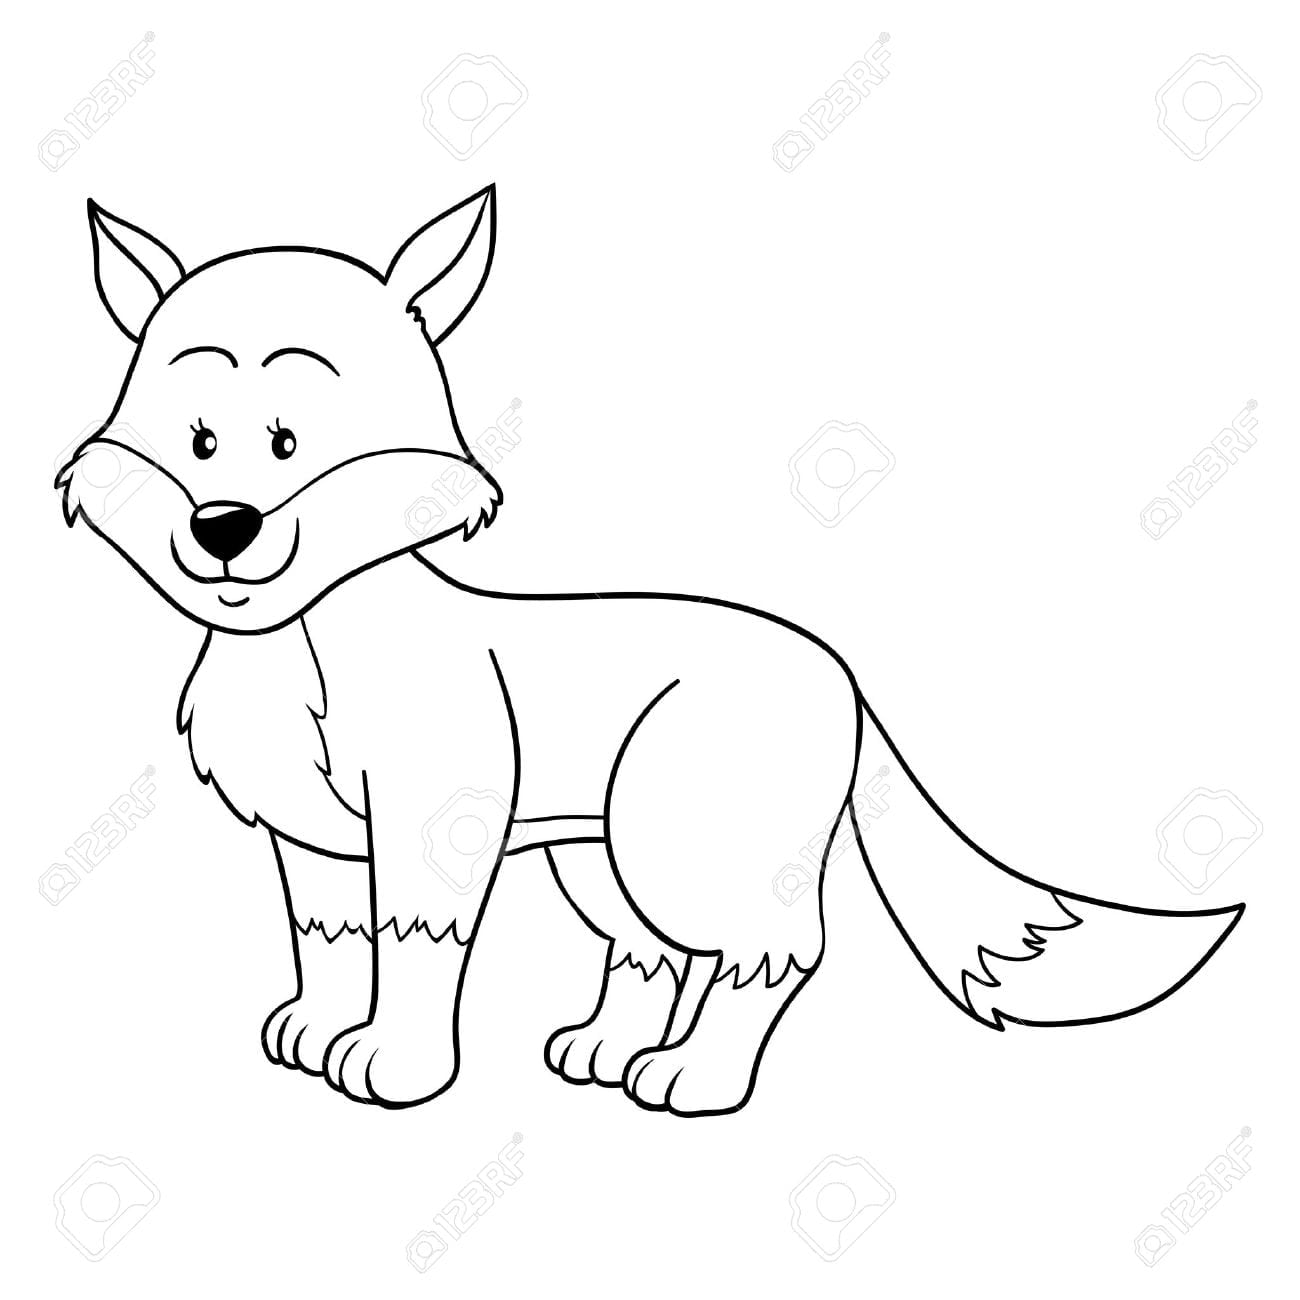 Coloring Book (fox) Royalty Free Cliparts, Vectors, And Stock